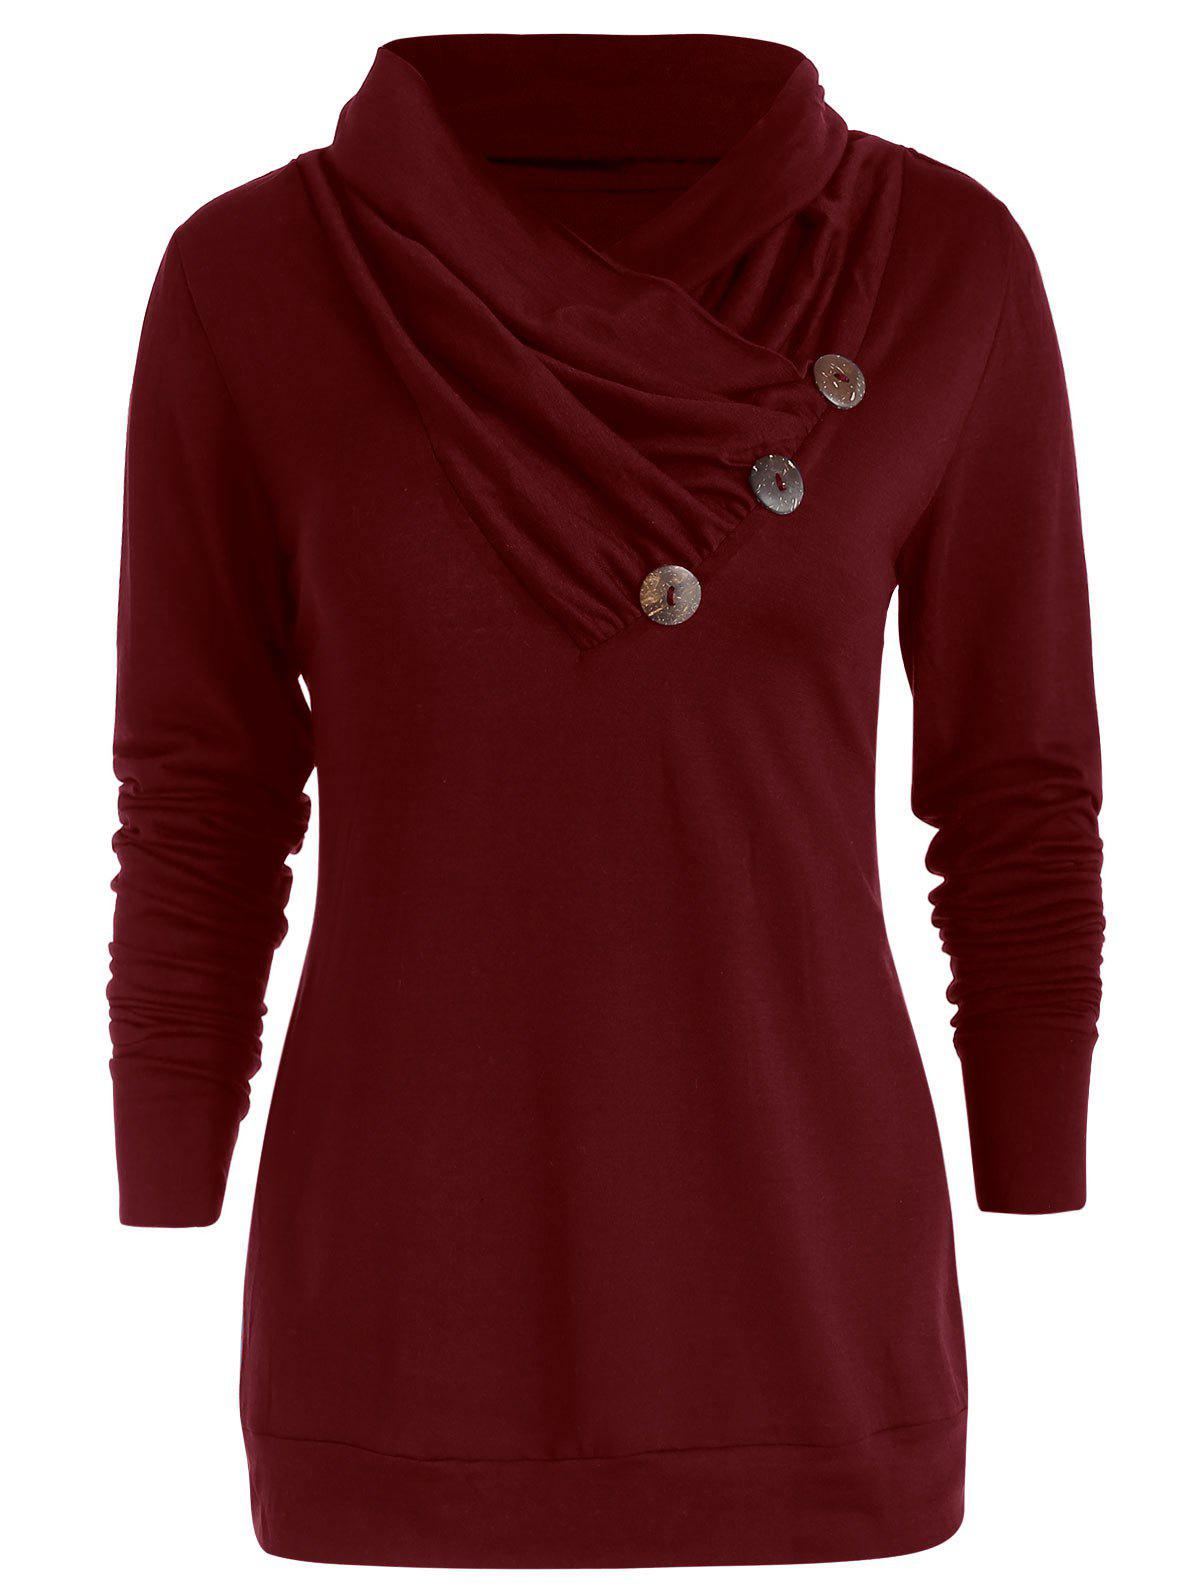 Cowl Neck Asymmetrical Button T Shirt - RED WINE L